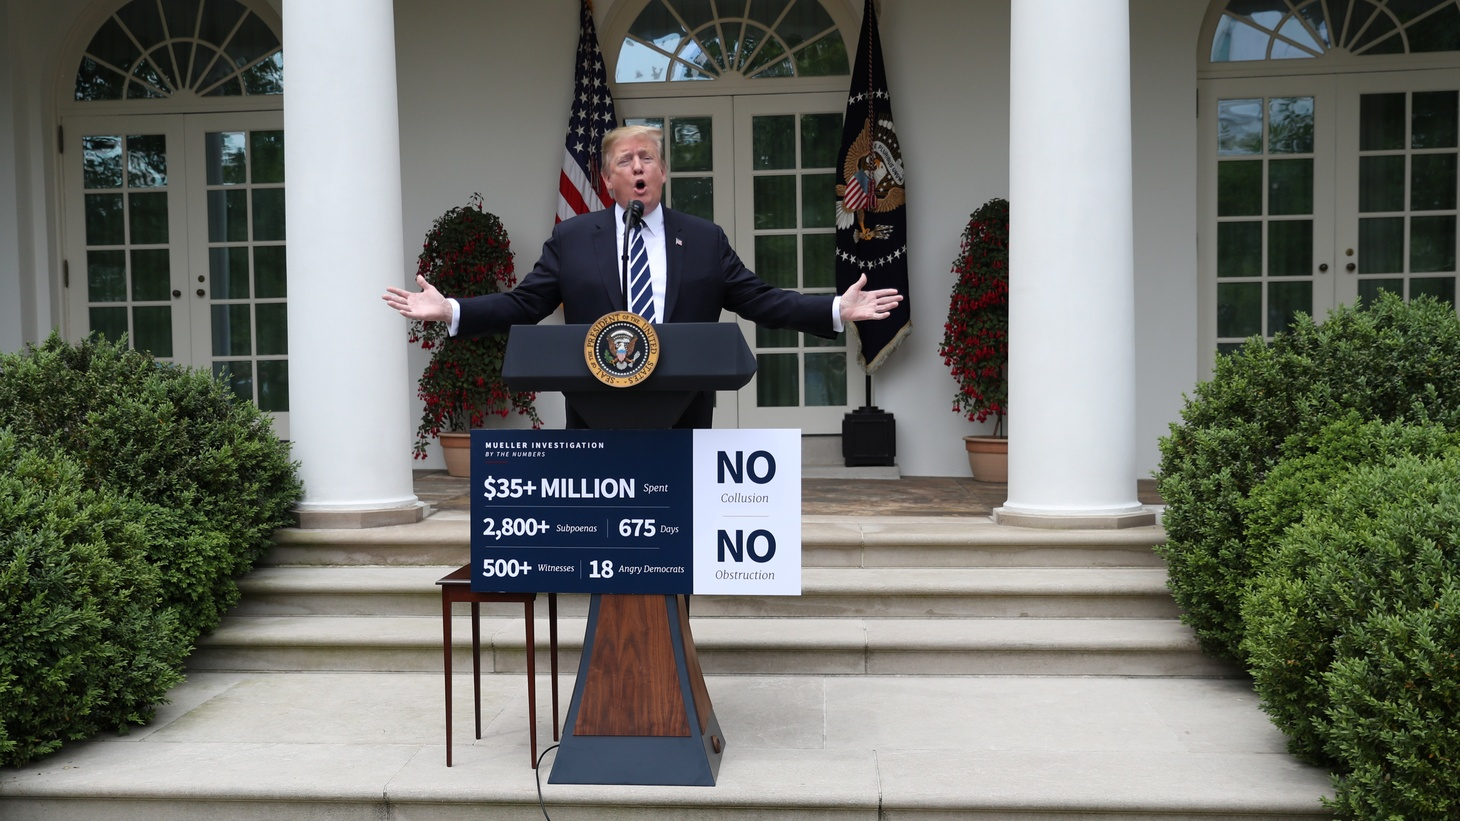 U.S. President Donald Trump speaks about the investigation by Special Counsel Robert Mueller in the Rose Garden at the White House in Washington, U.S., May 22, 2019.